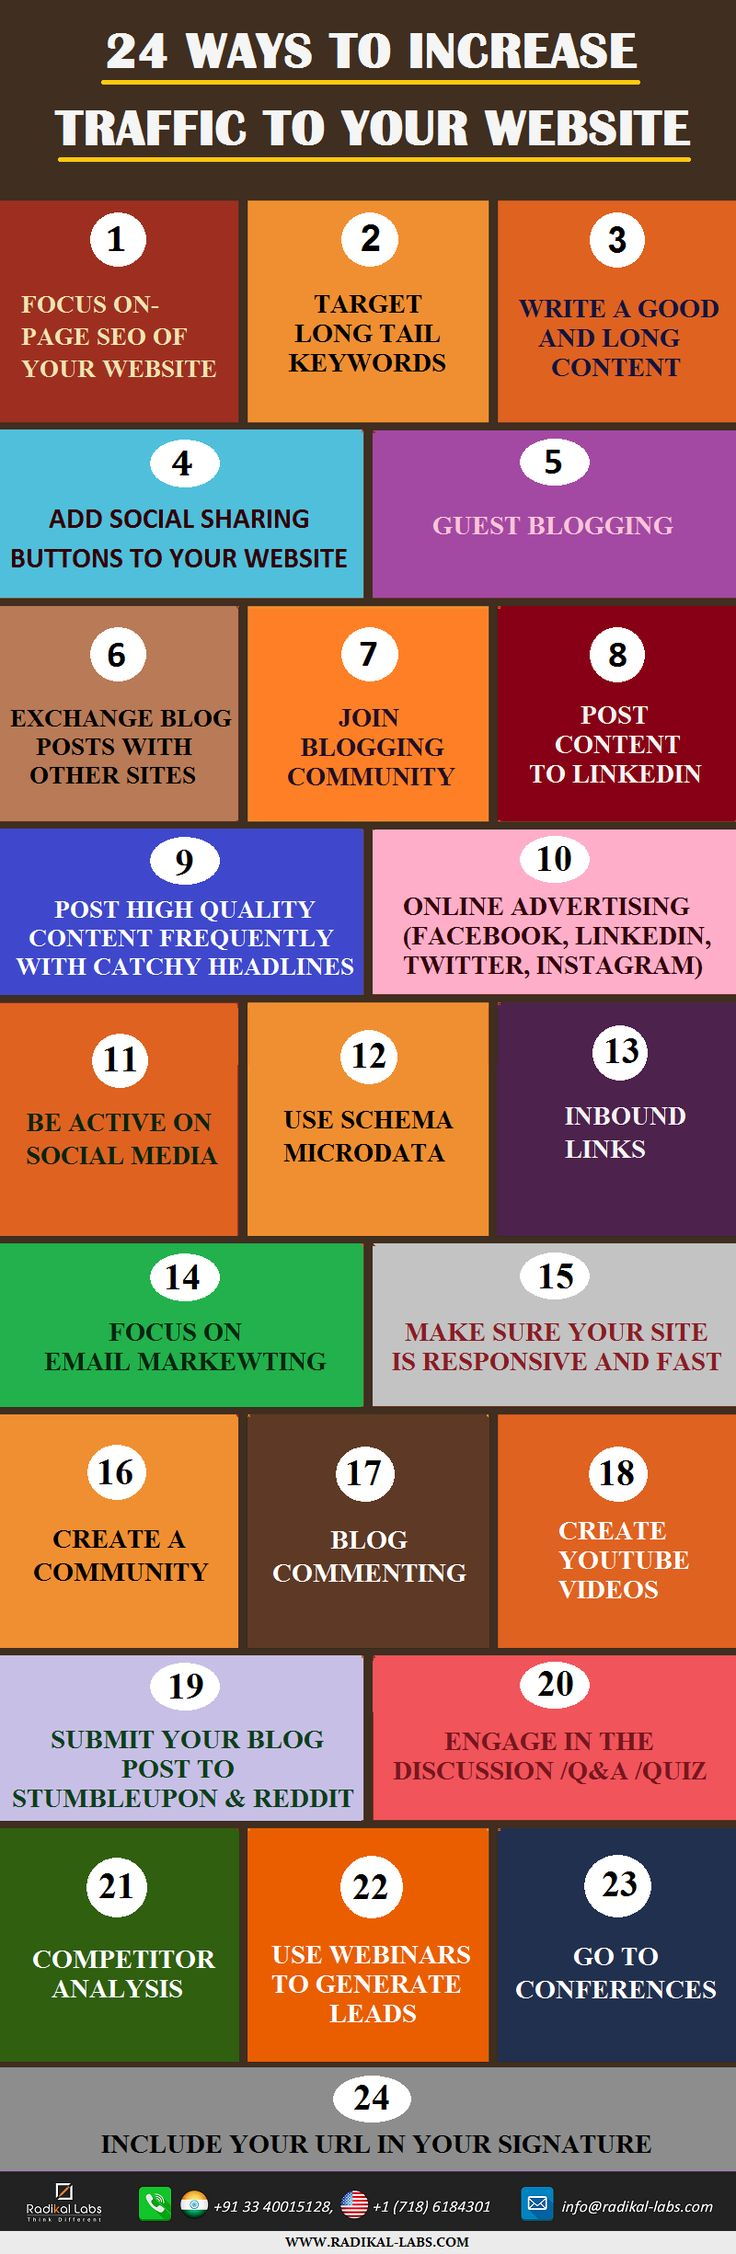 24 Ways to Increase Traffic to Your Website